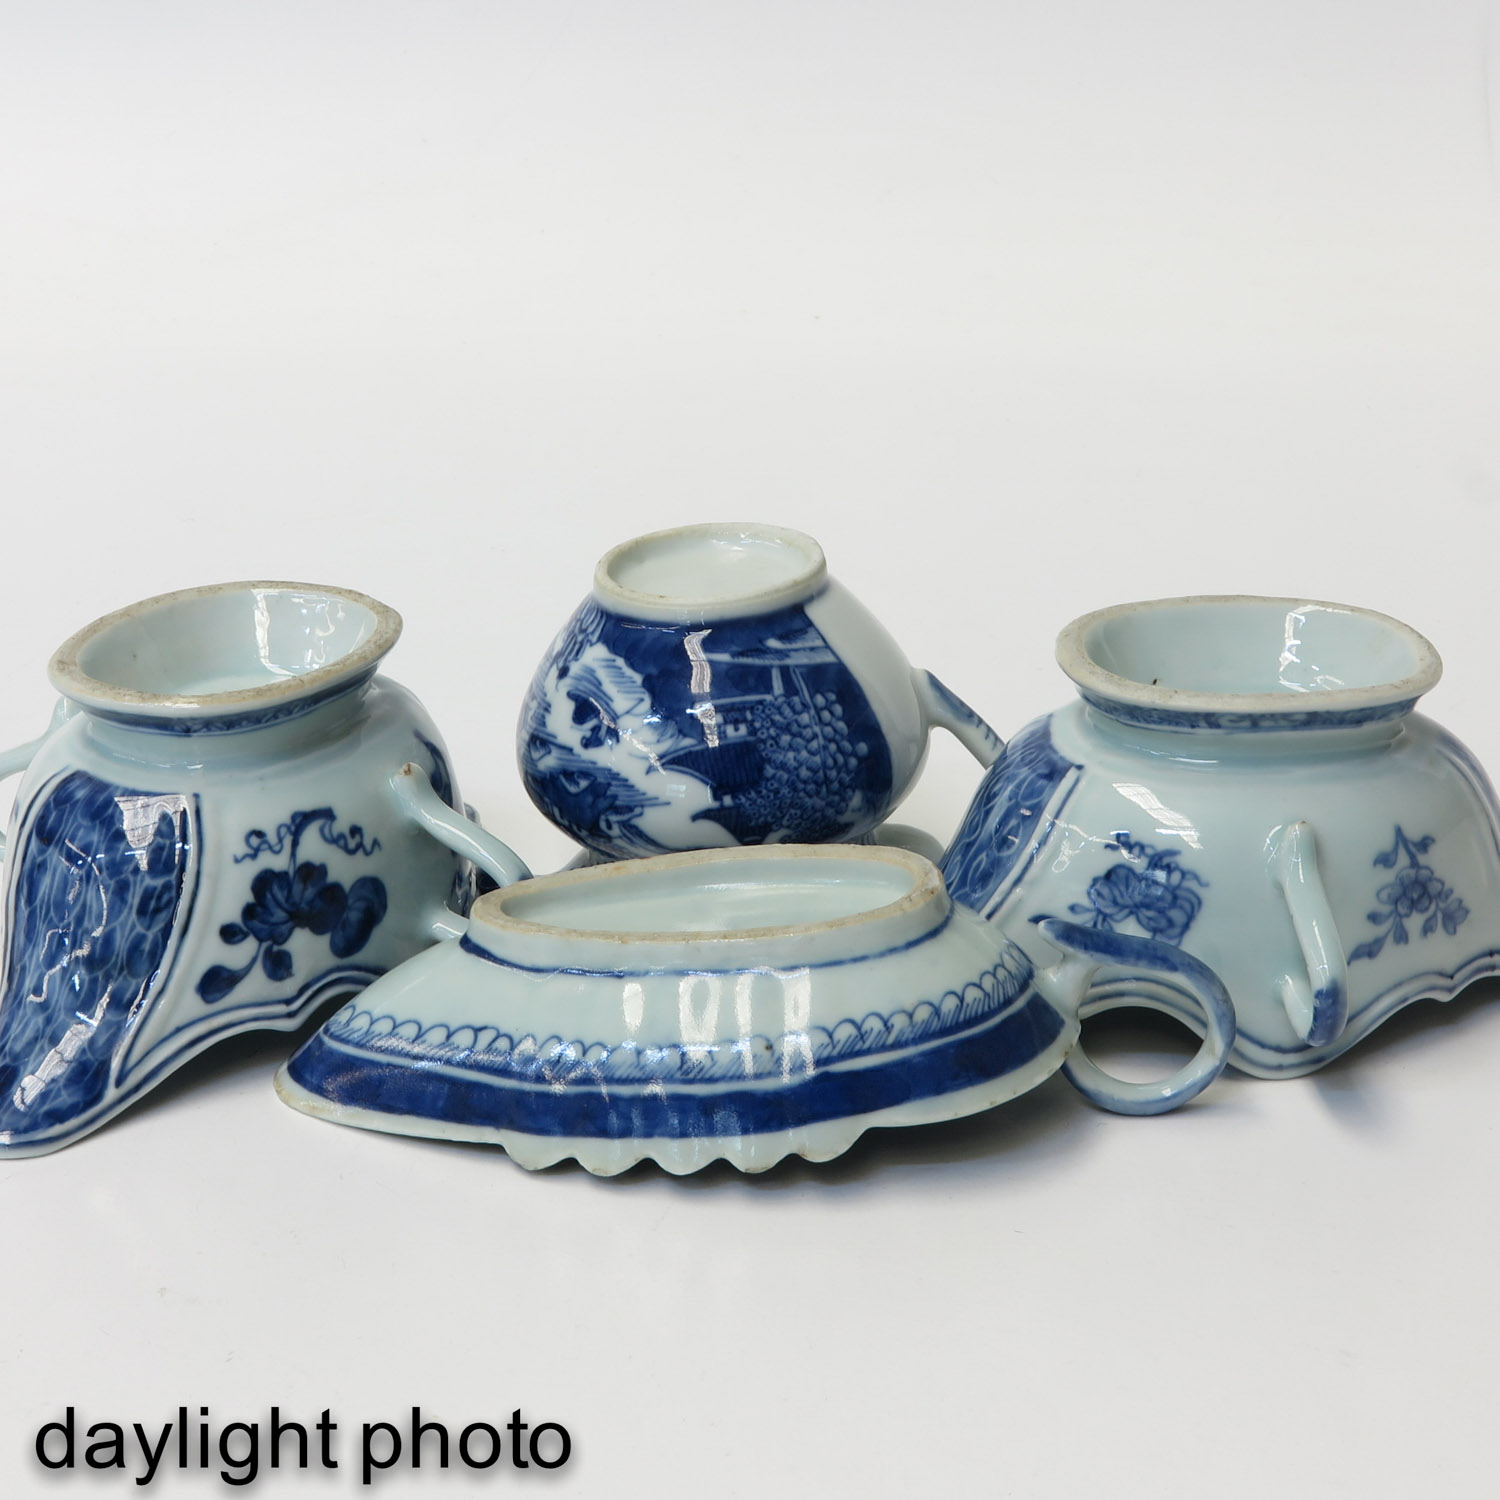 A Collection of Porcelain - Image 8 of 10